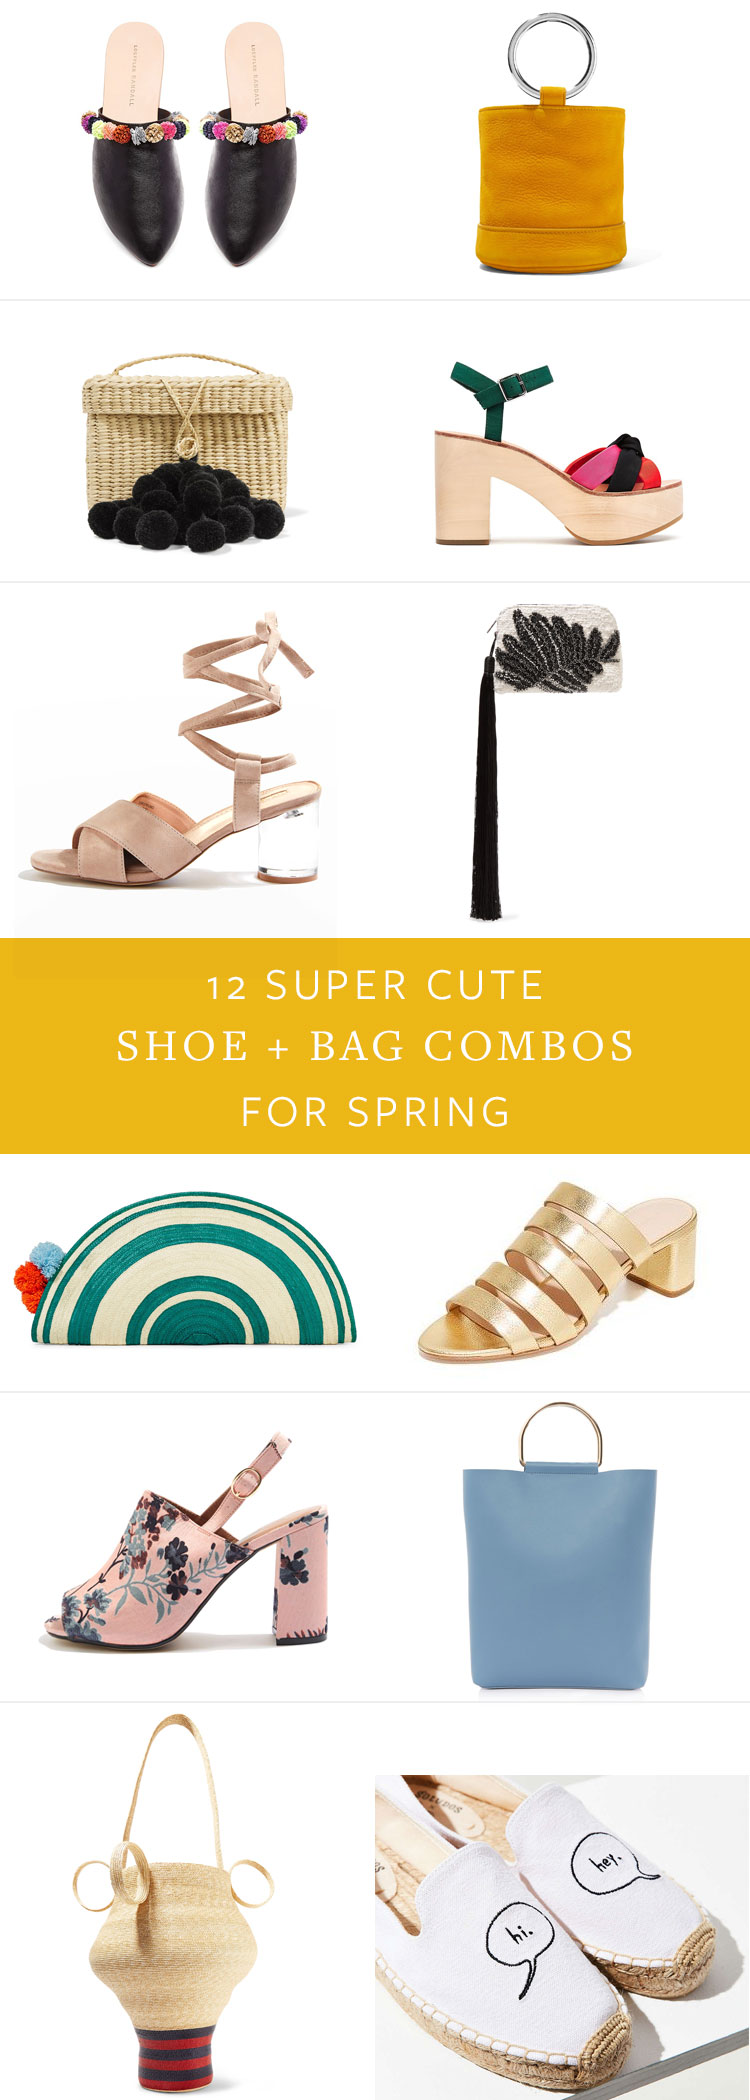 12 super cute shoe + bag combos for spring. more fashion inspiration on jojotastic.com